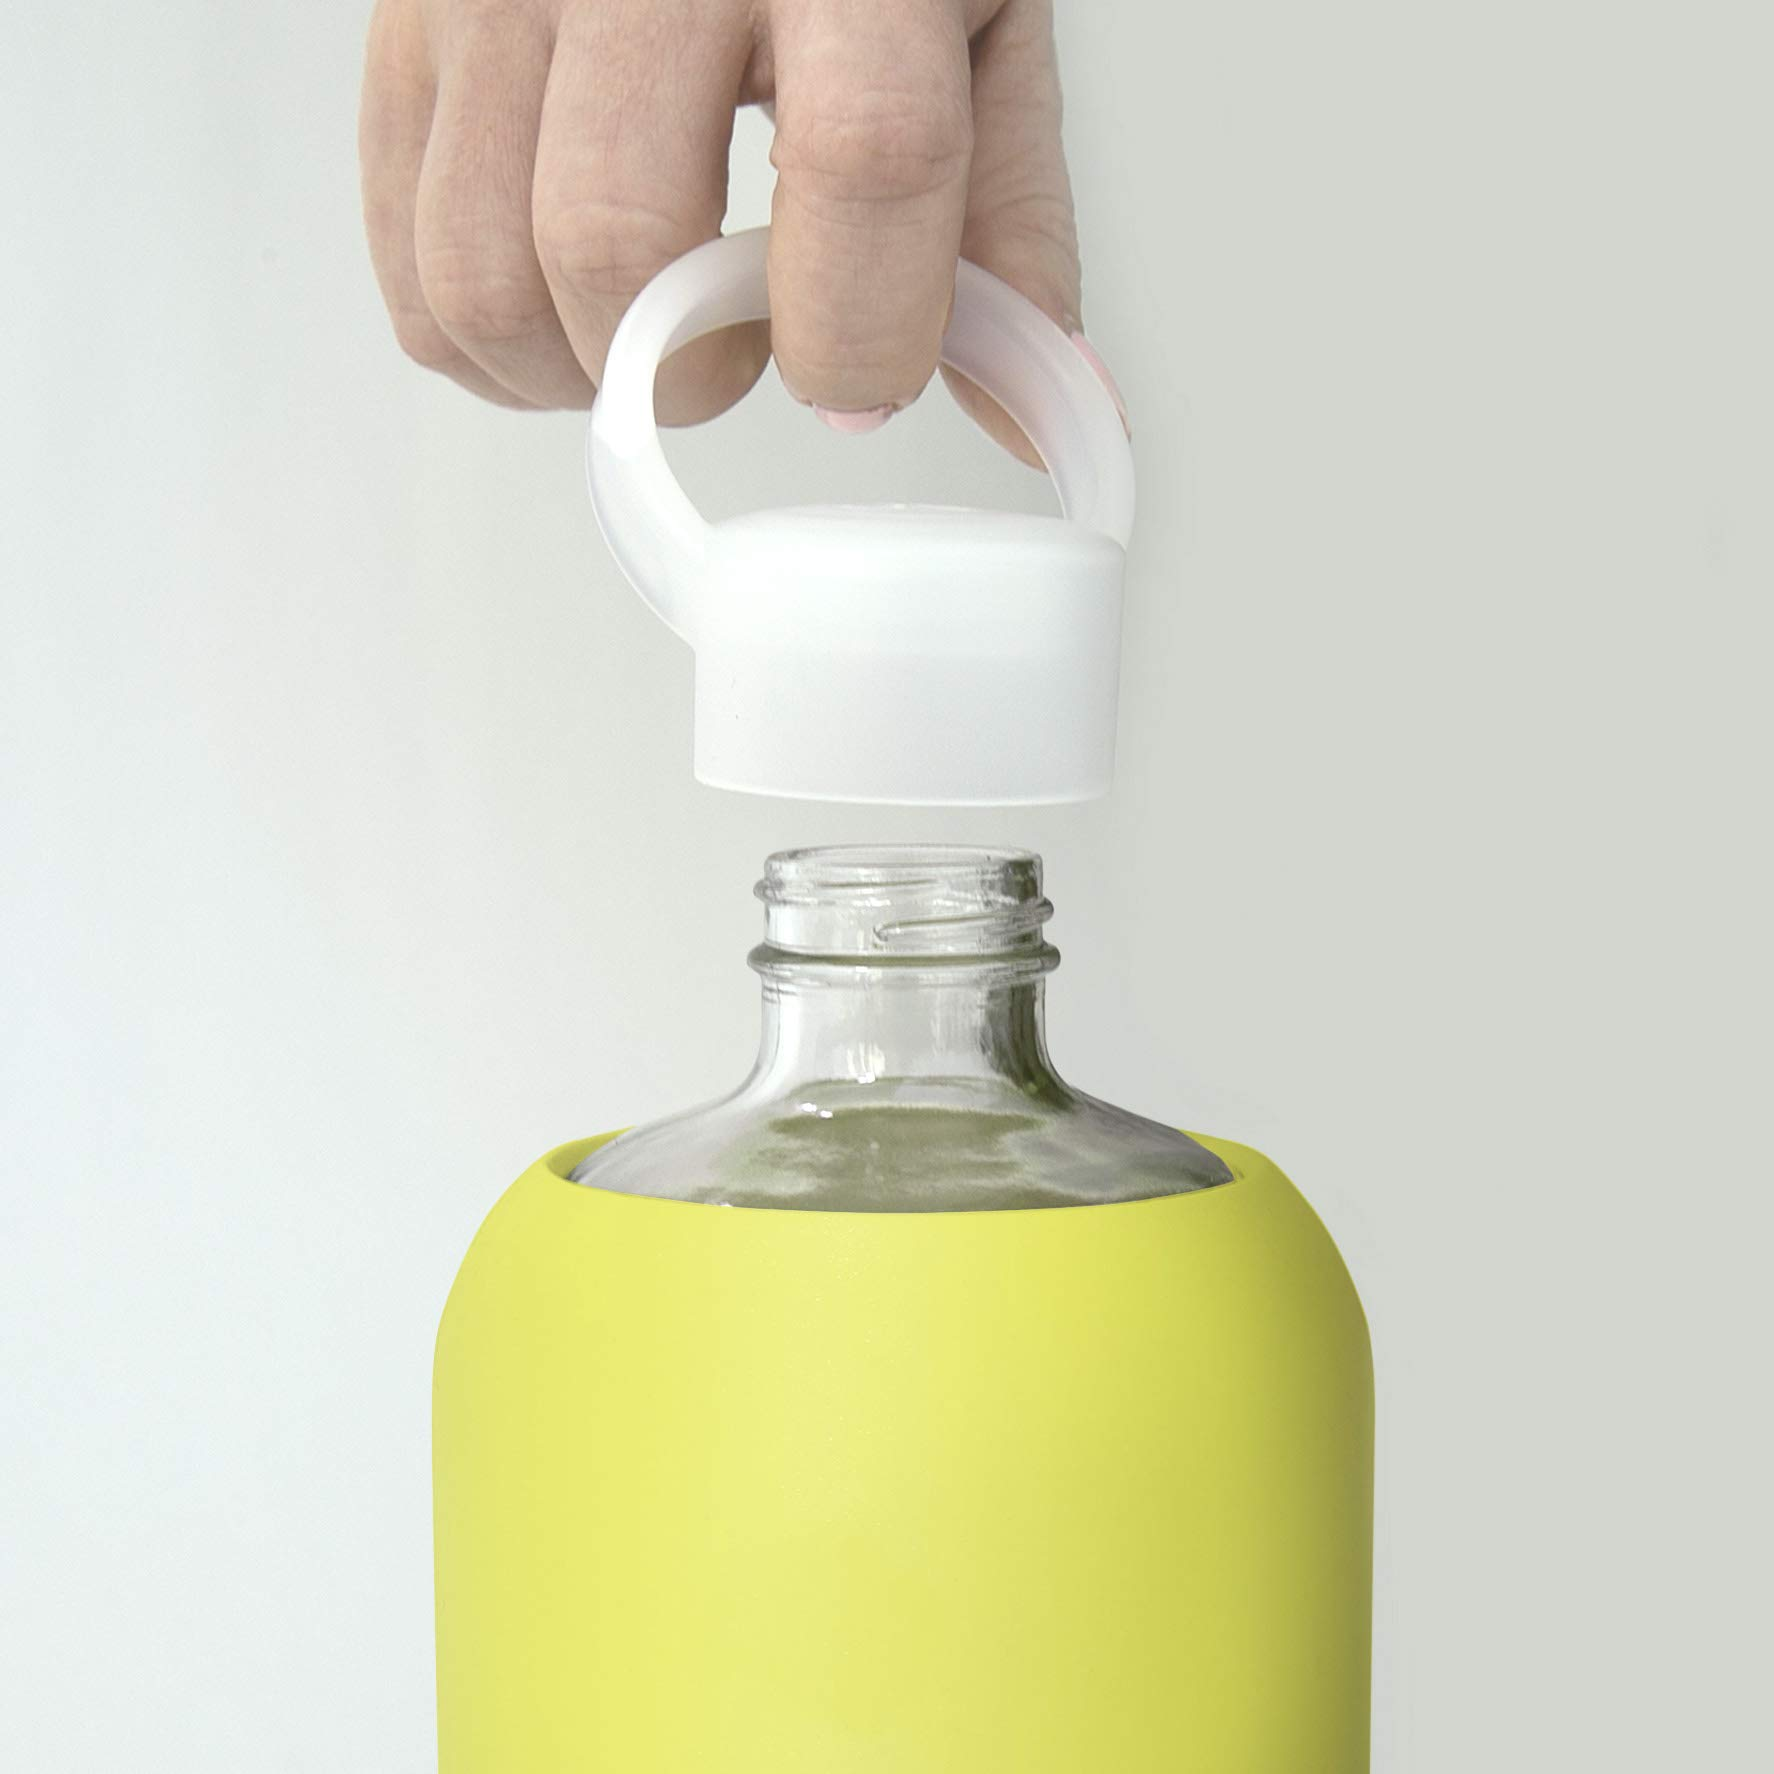 bkr Gigi Glass Water Bottle with Smooth Silicone Sleeve for Travel, Narrow Mouth, BPA-Free & Dishwasher Safe, Opaque Lime Yellow, 1 Count by bkr (Image #4)